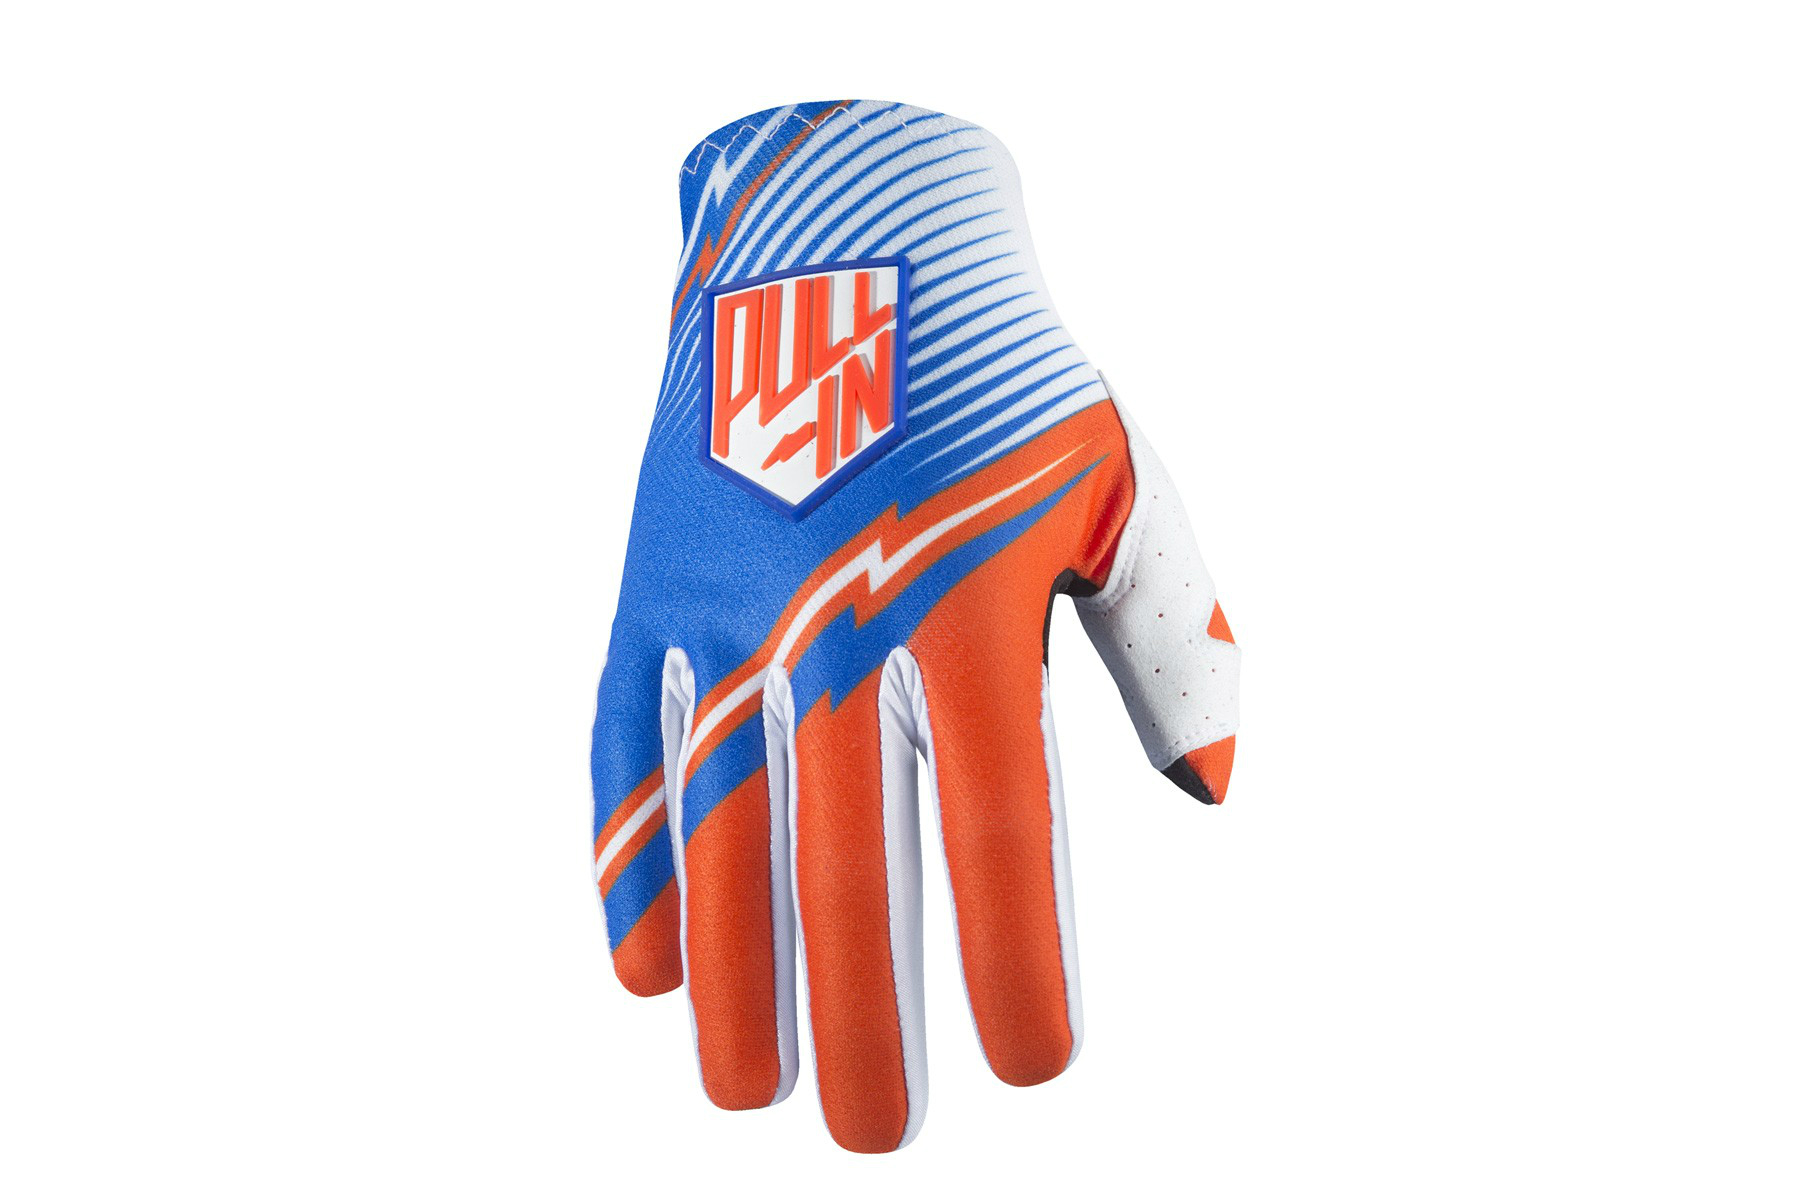 gants pull-in challenger bleu orange 2017 - Velobrival